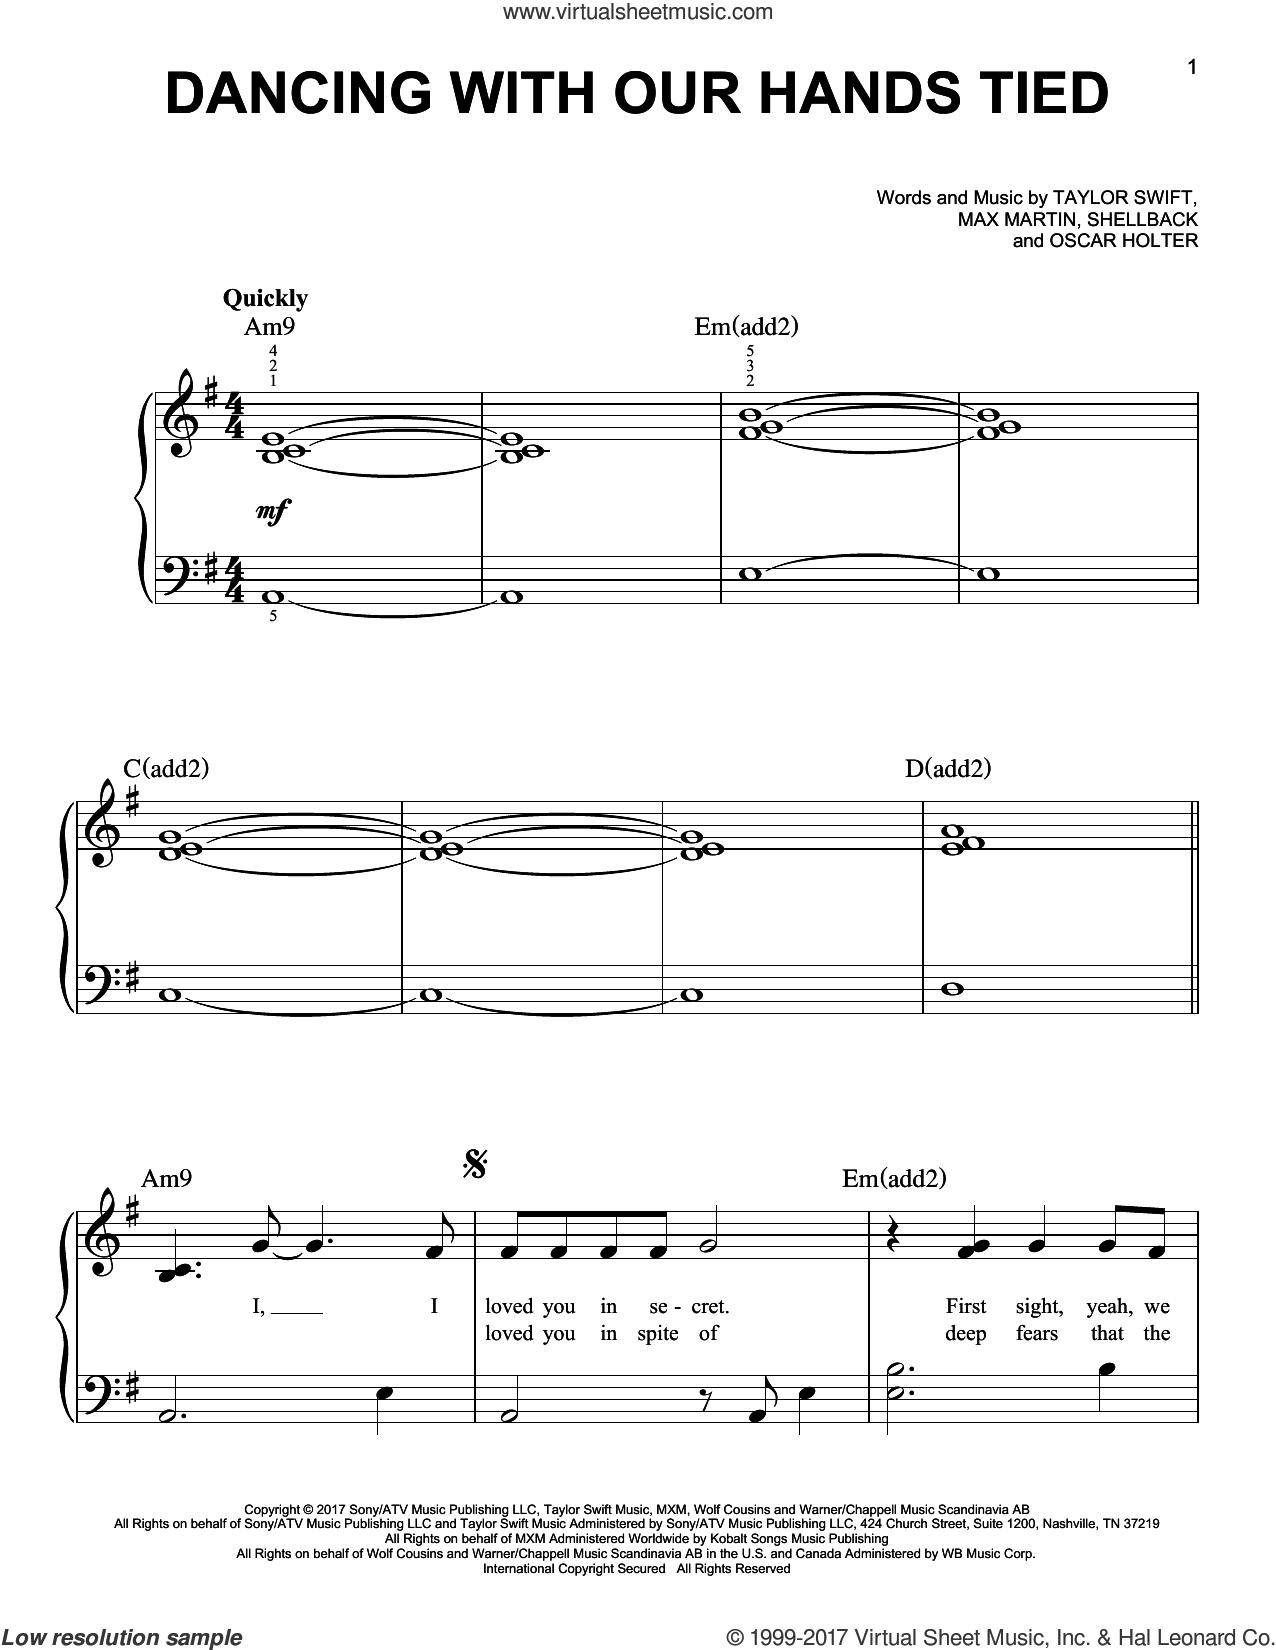 Dancing With Our Hands Tied sheet music for piano solo by Taylor Swift, Max Martin, Oscar Holter and Shellback, easy. Score Image Preview.